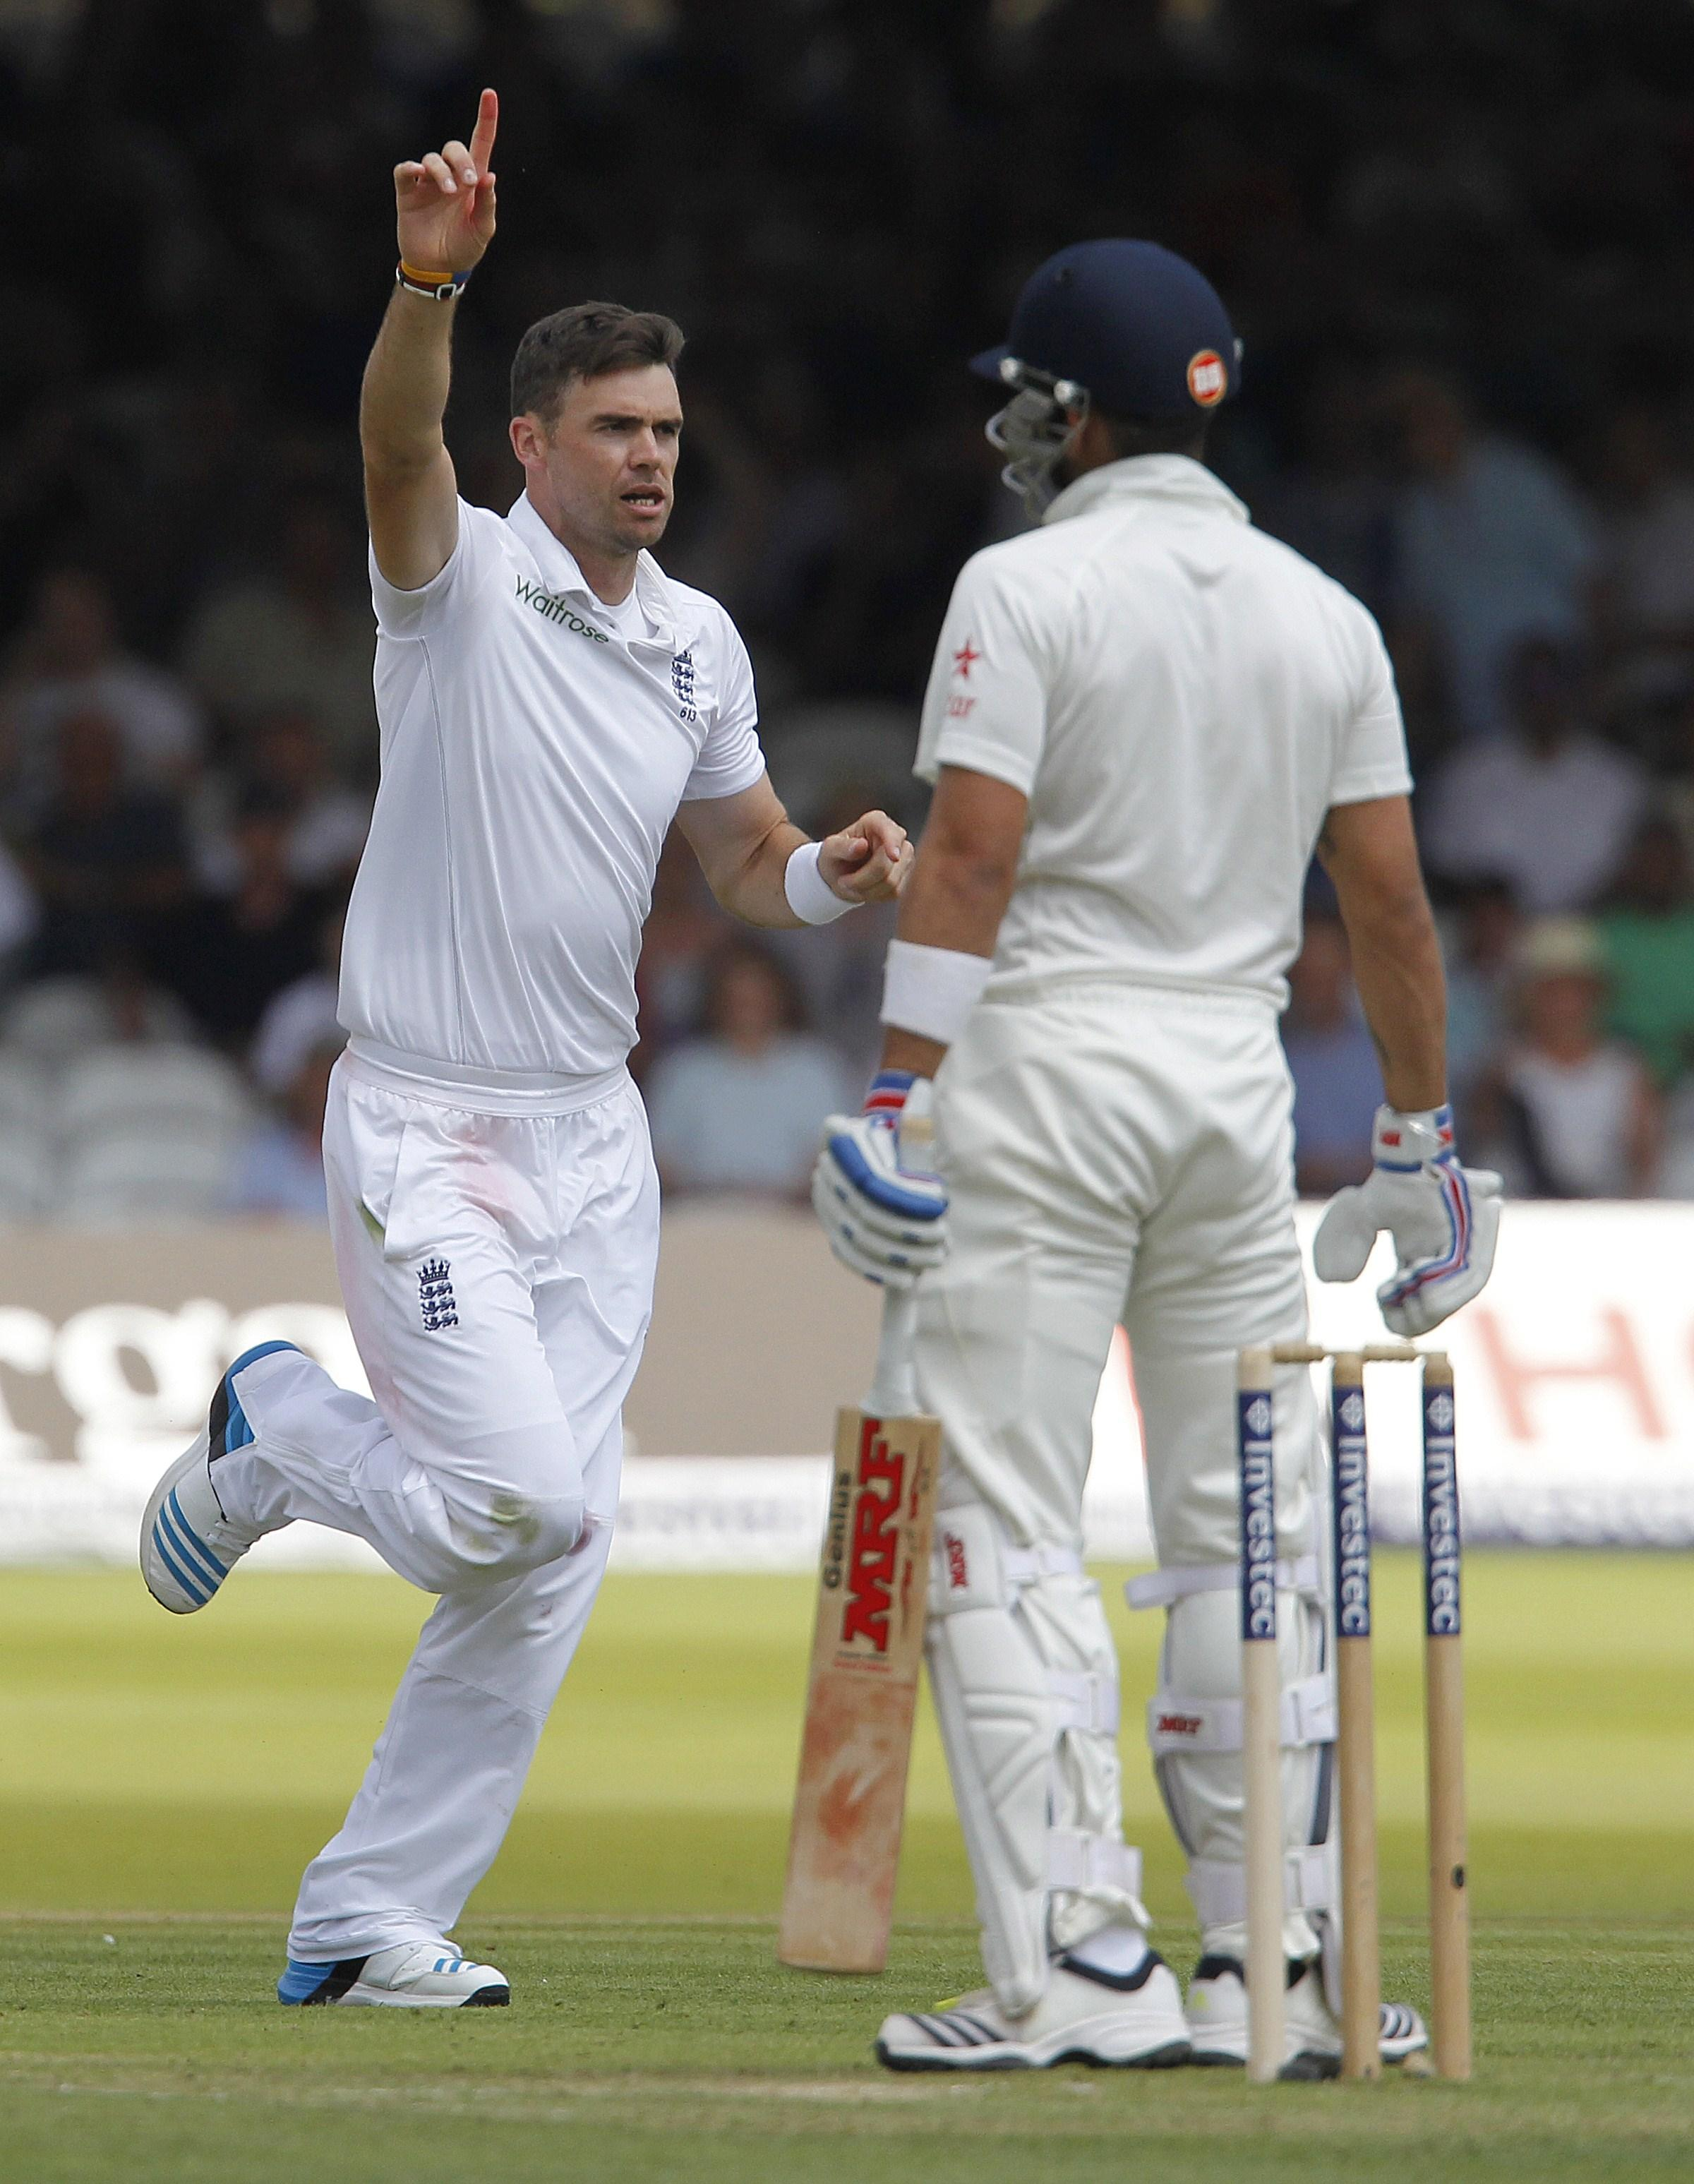 James Anderson celebrates taking the wicket of Virat Kohli four years ago